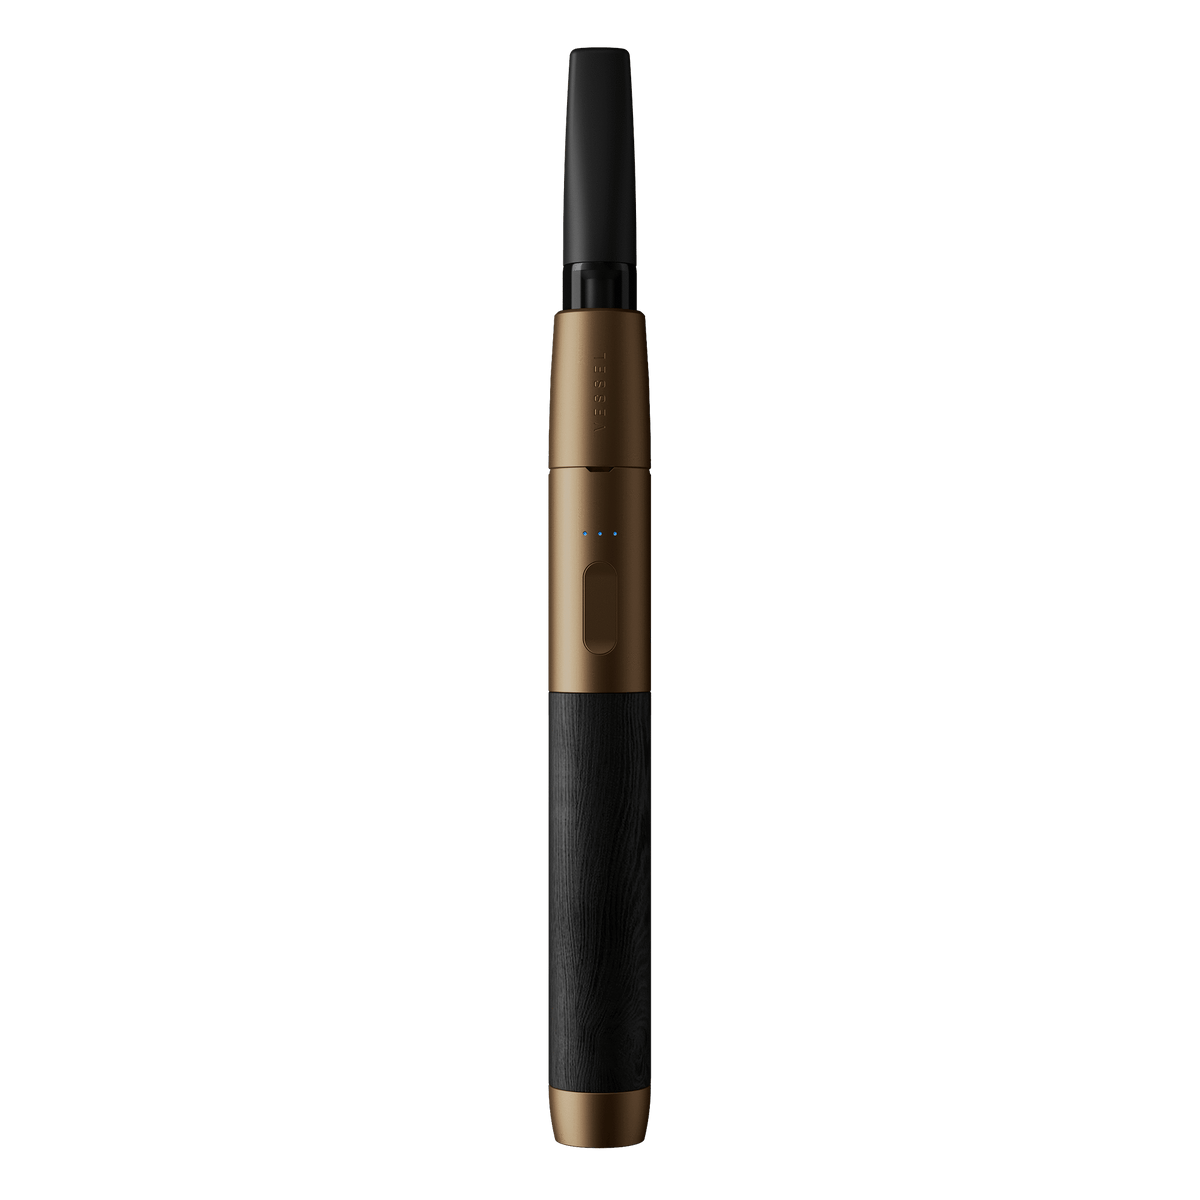 Black Wood and Bronze Vape Pen Battery